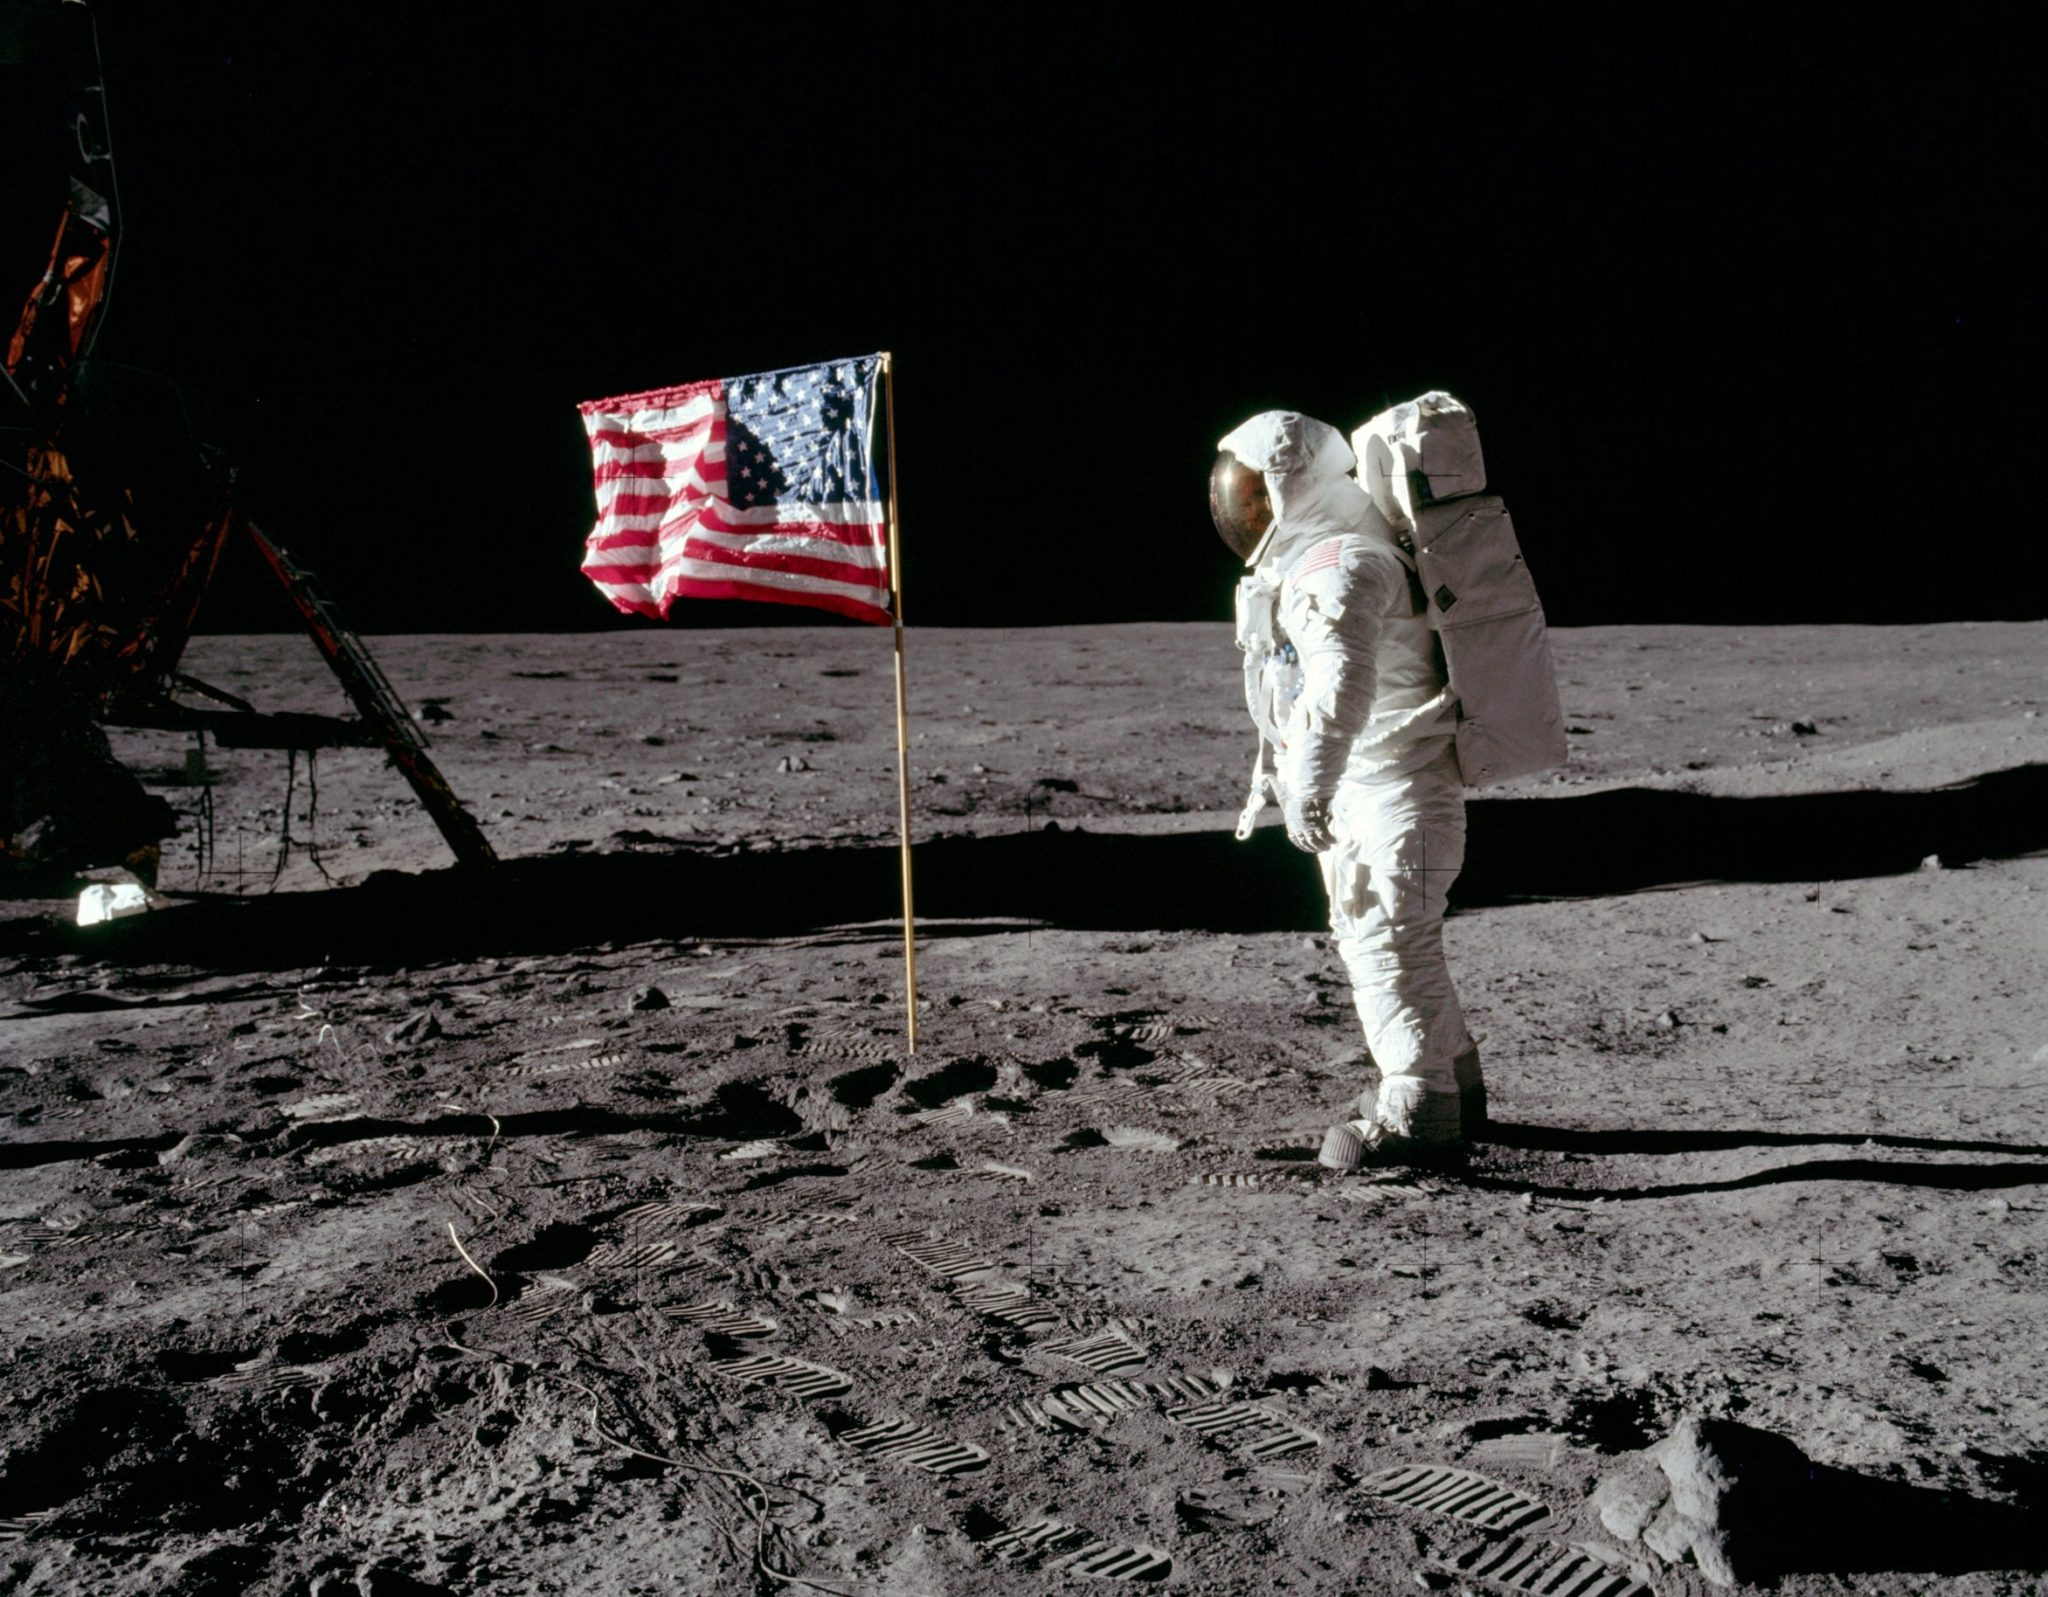 50 Things That Shaped Our World in 1969